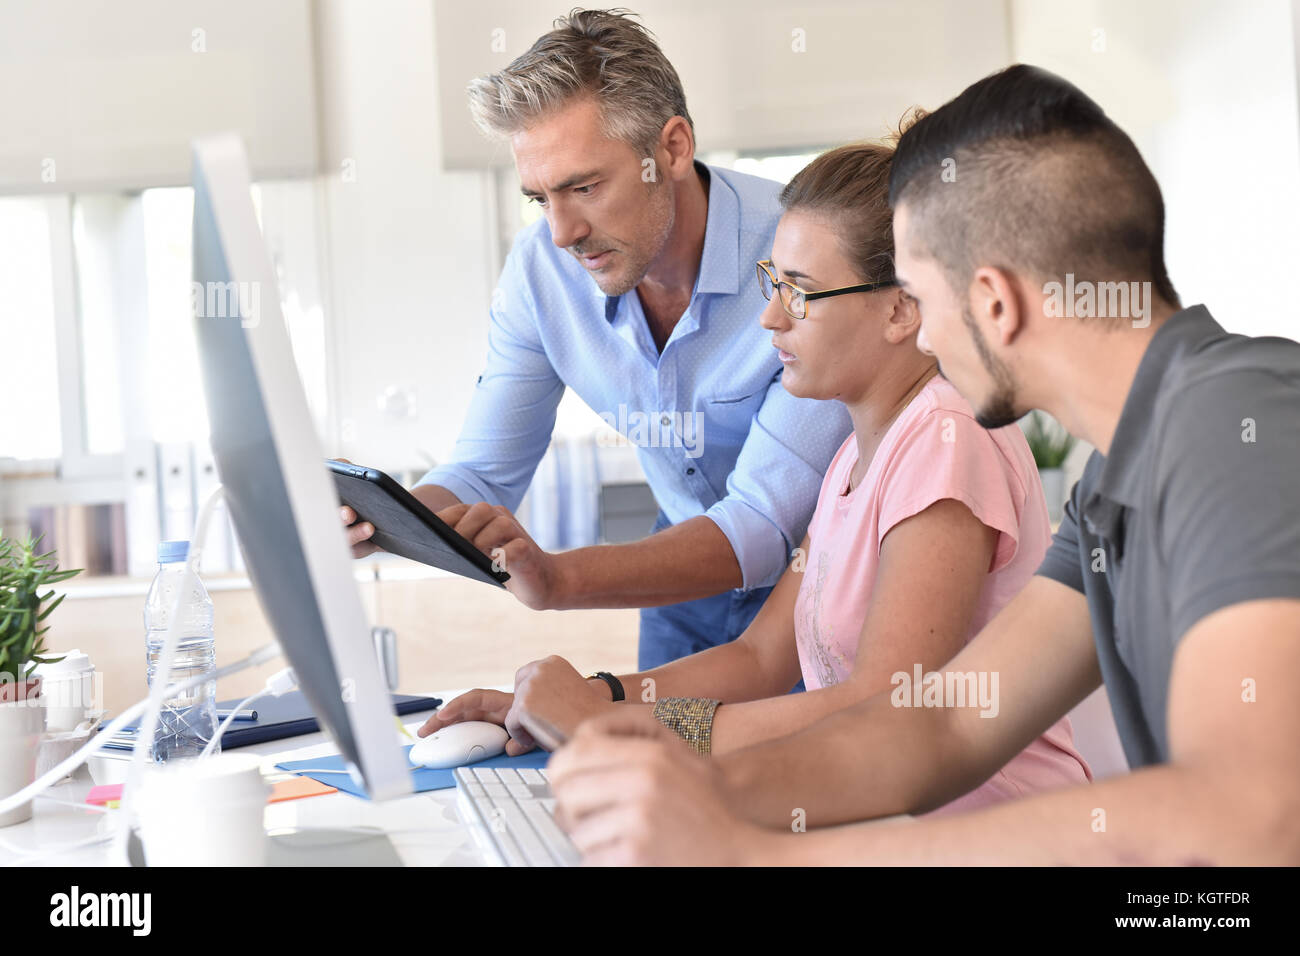 Students in design training course using tablet - Stock Image